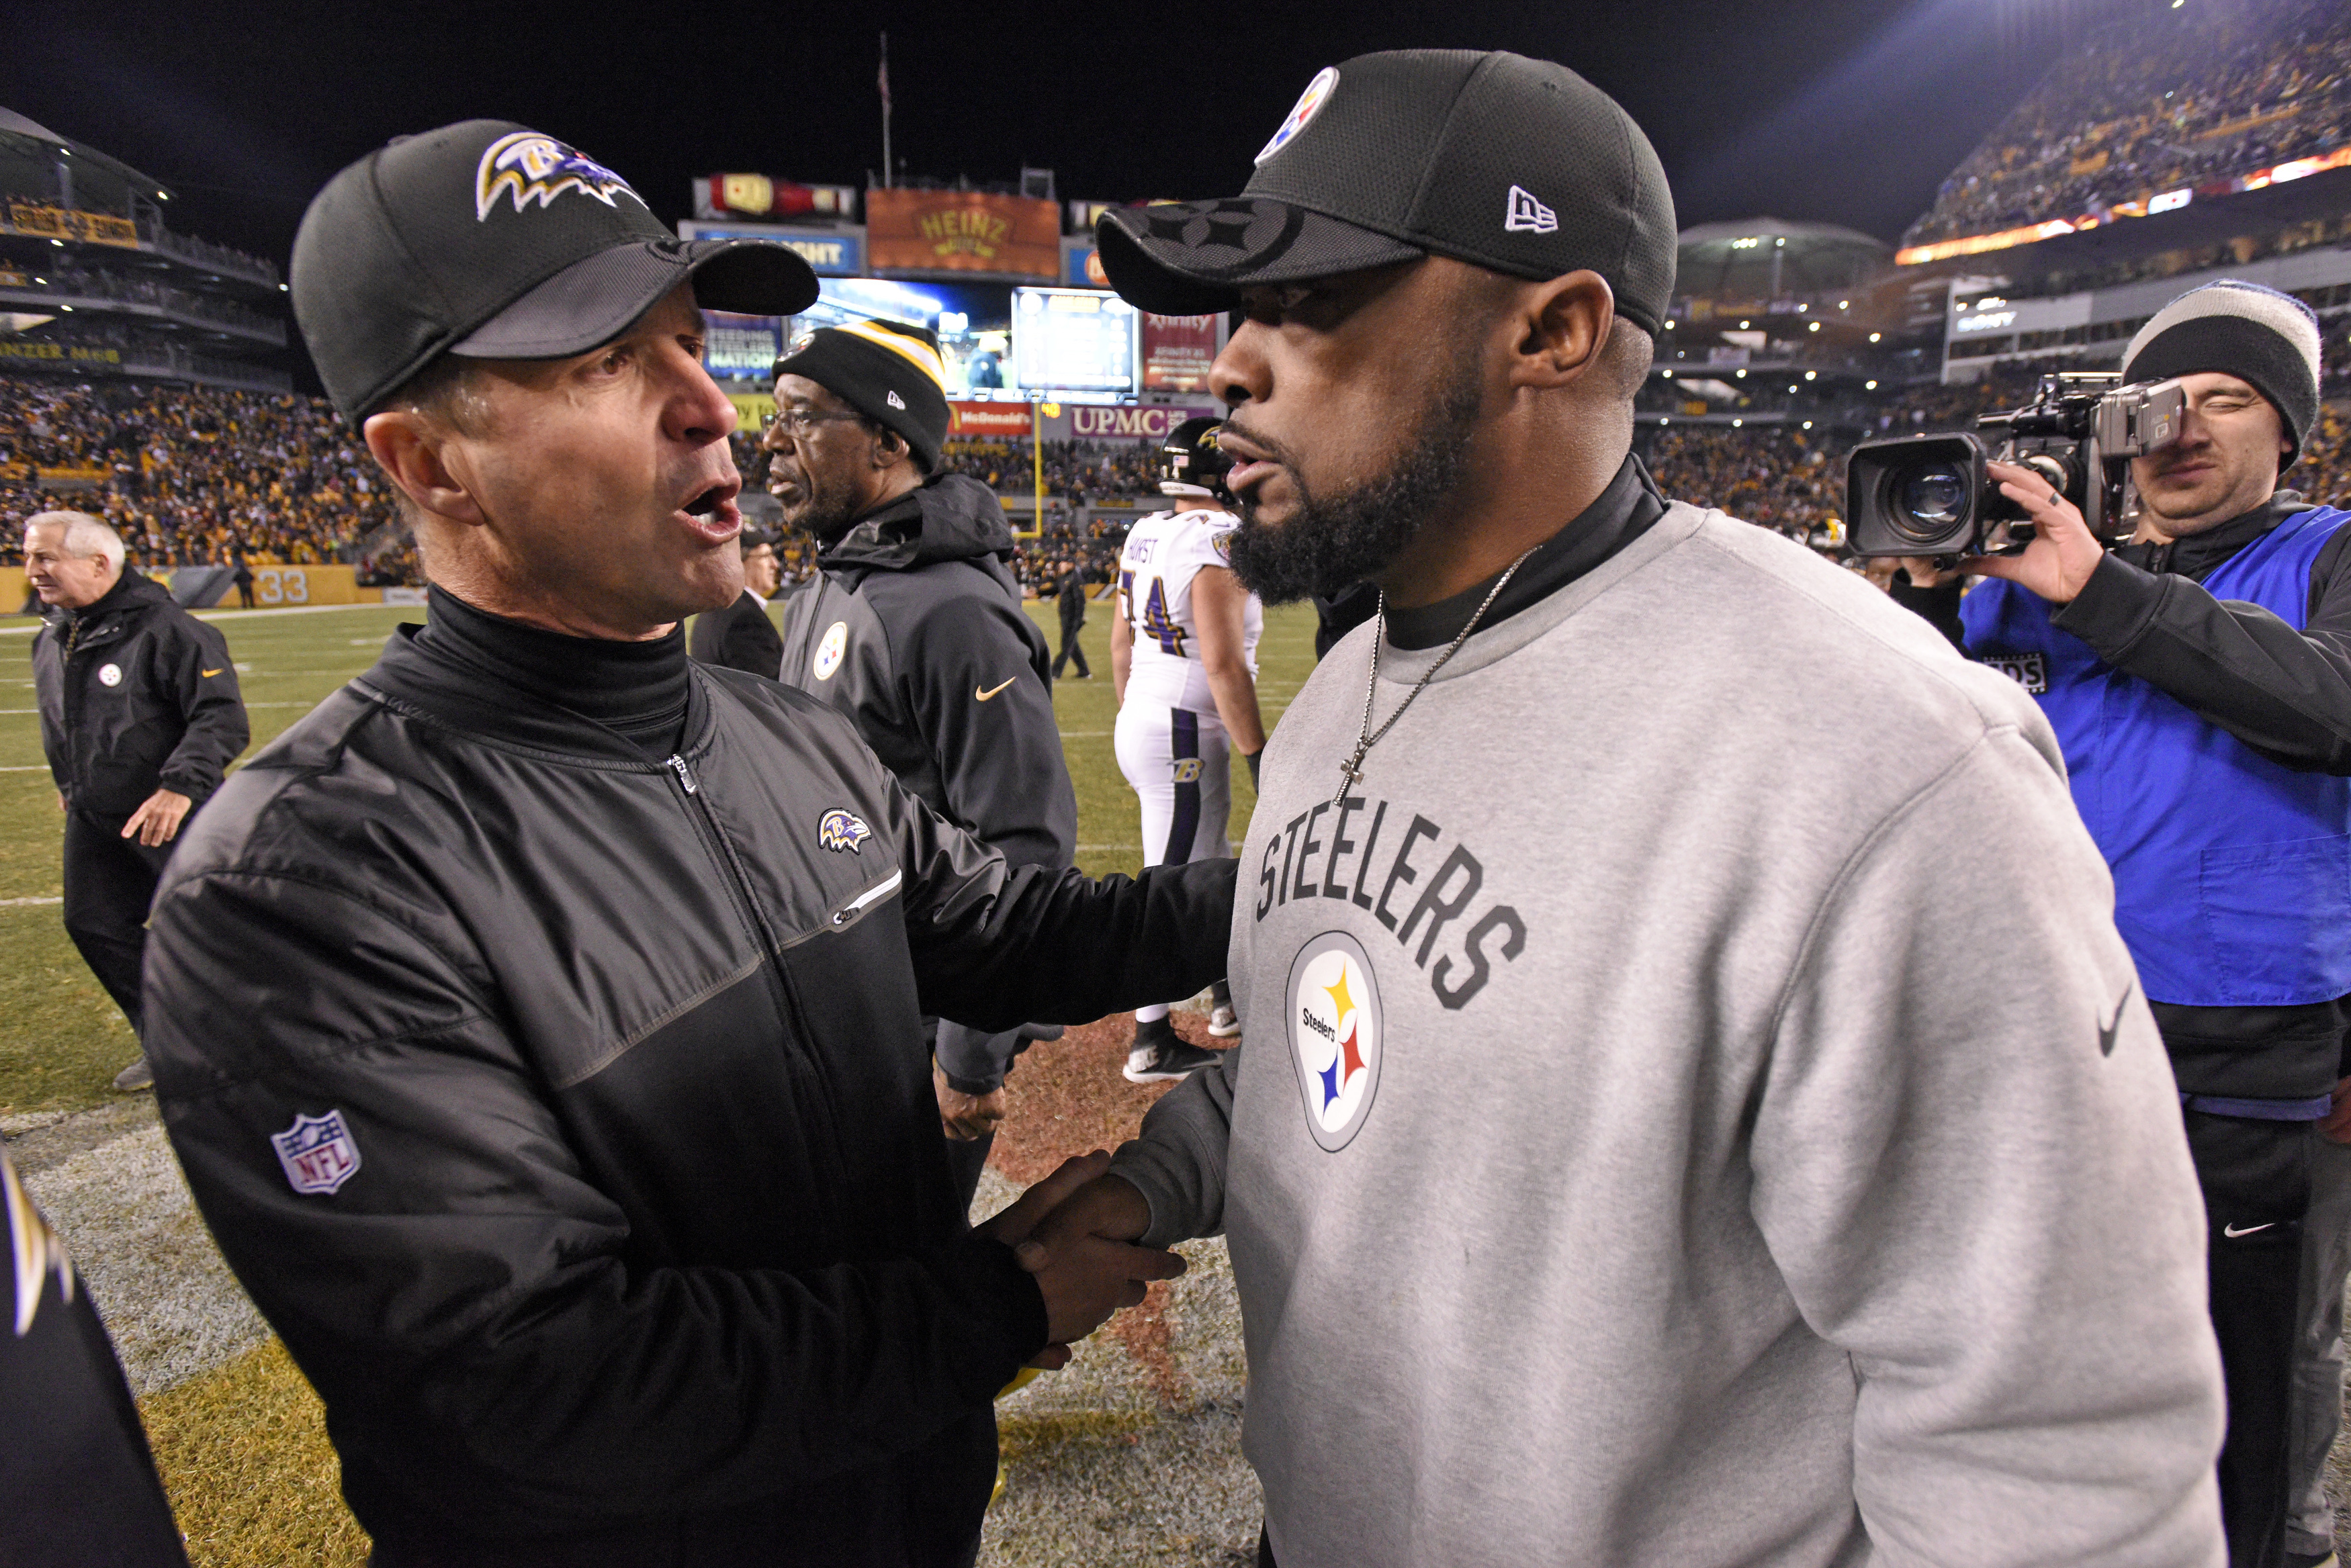 Pittsburgh Steelers head coach Mike Tomlin, right, and Baltimore Ravens head coach John Harbaugh meet following an NFL football game in Pittsburgh, Sunday, Dec. 25, 2016. The Steelers won 31-27. (AP Photo/Don Wright)